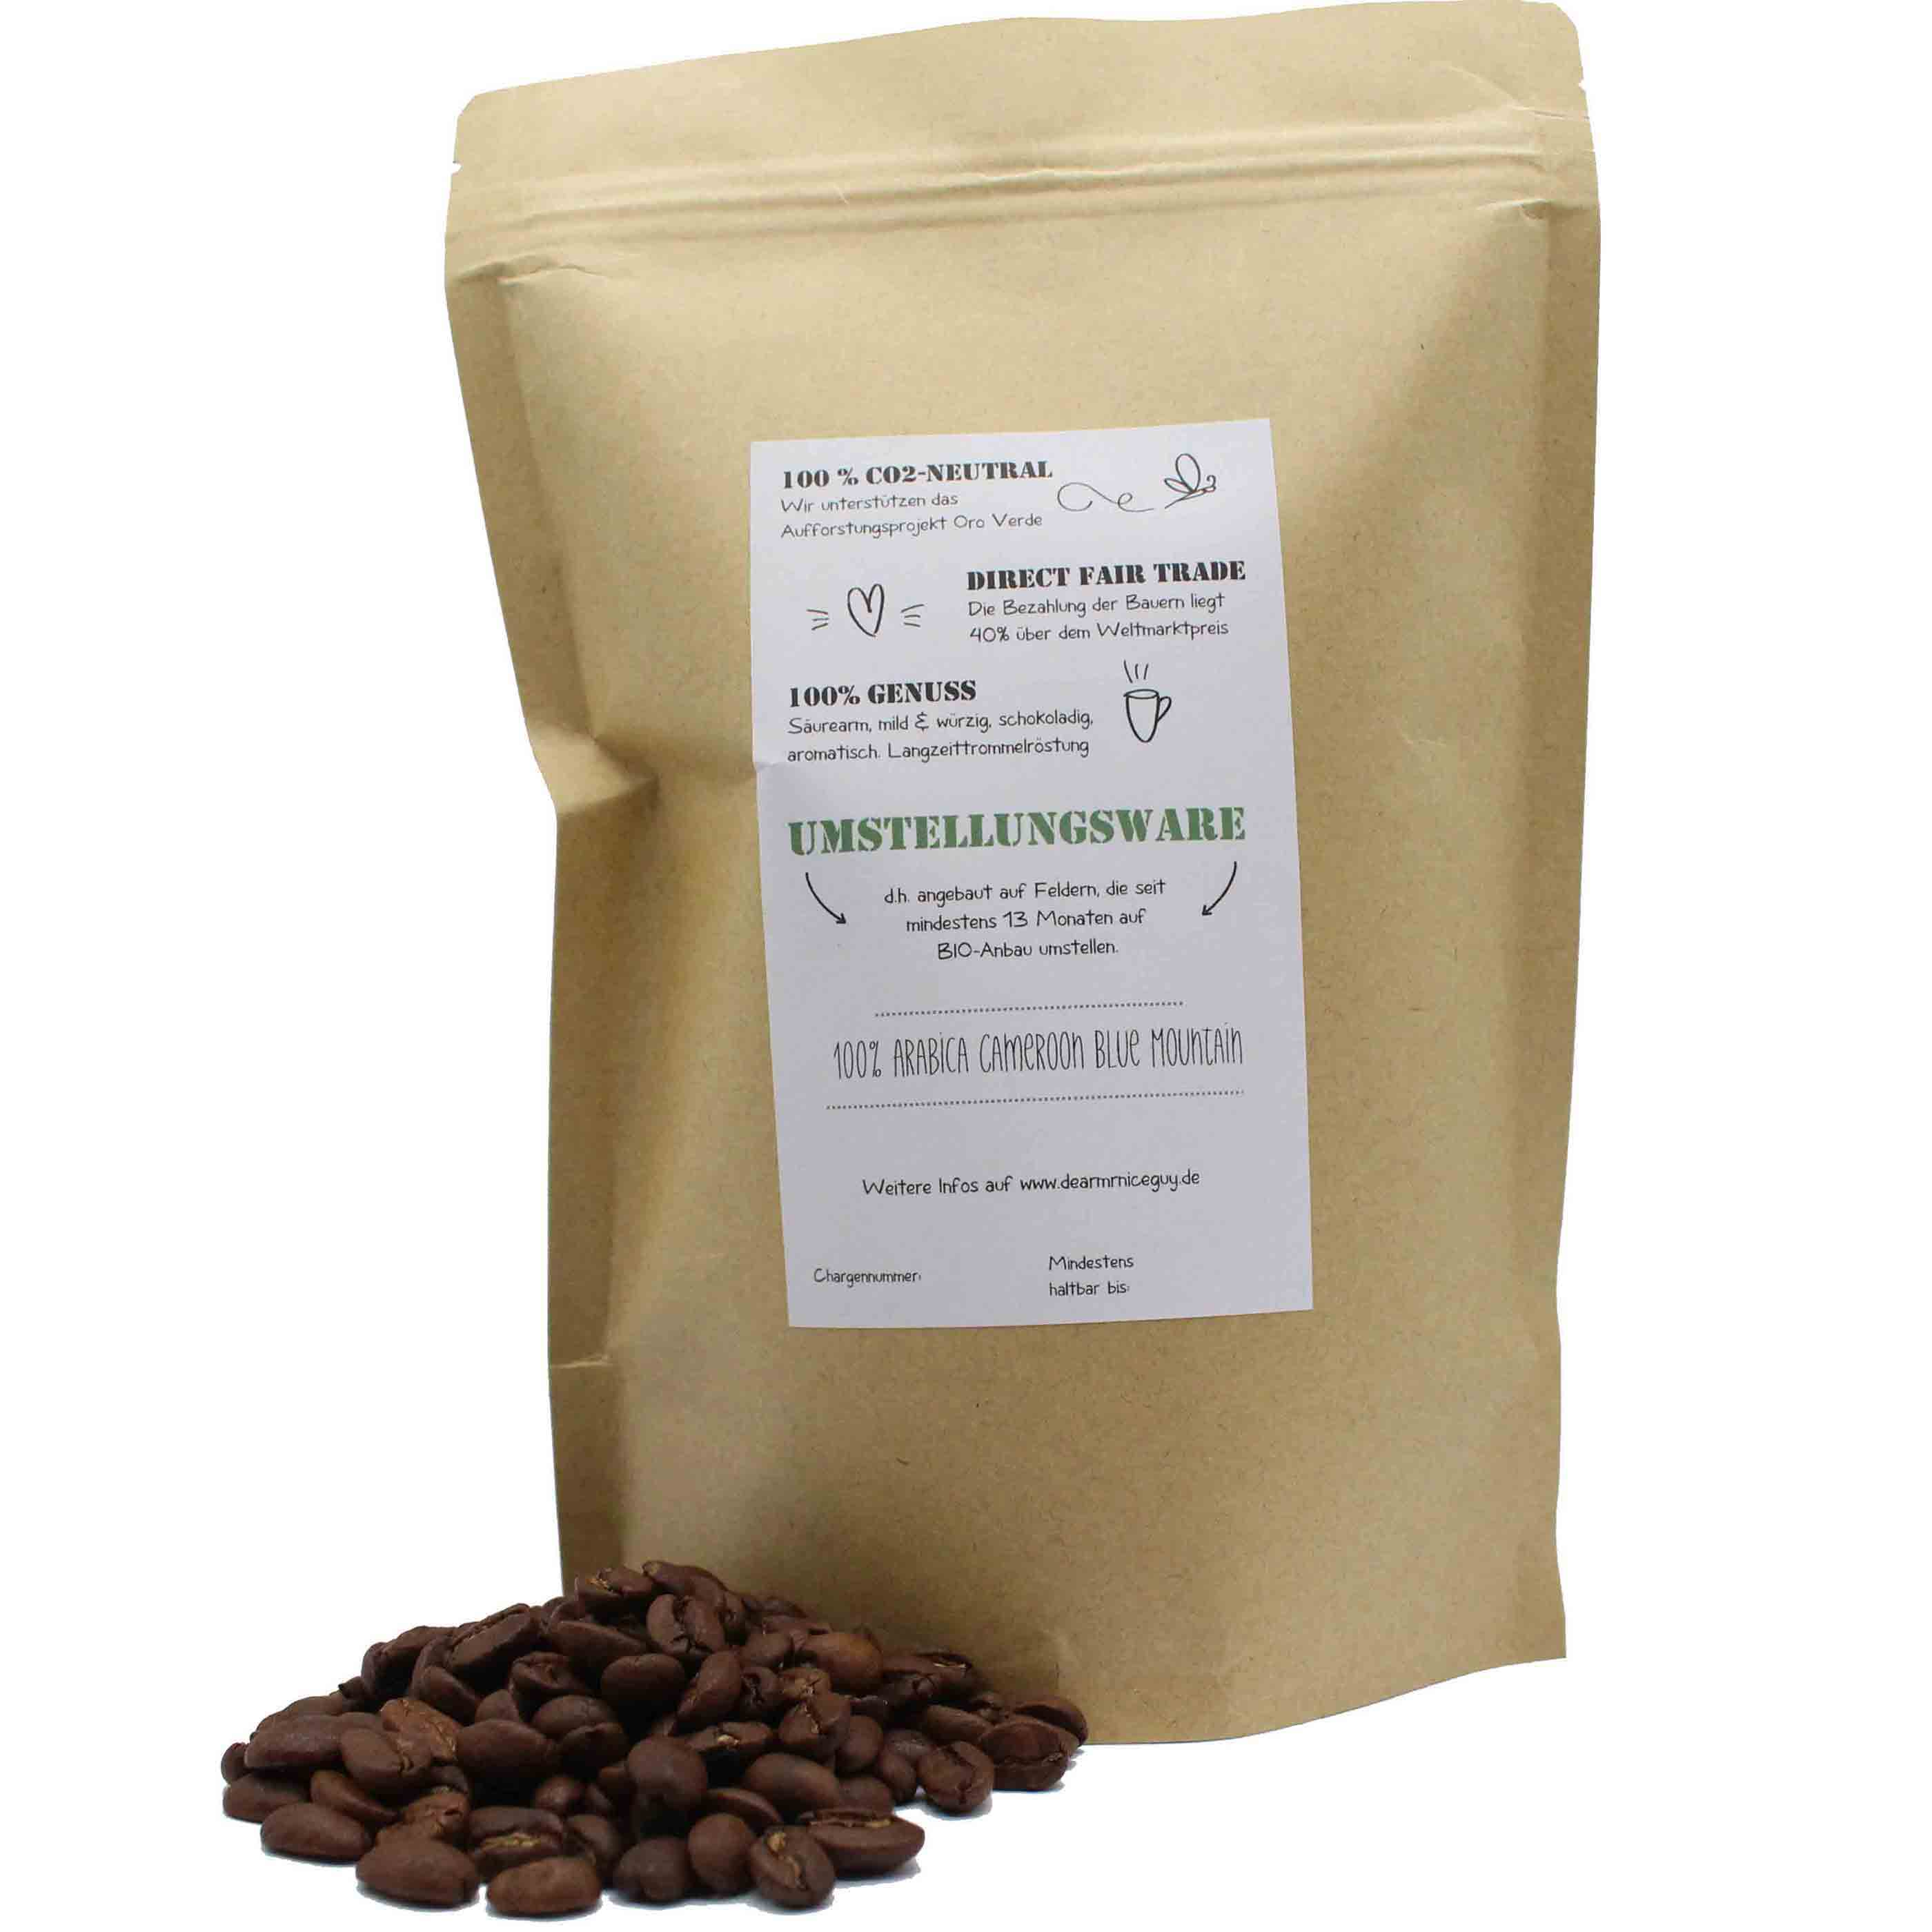 Dear Mr. Nice Guy Direct Fair Trade Kaffee Nachhaltig Fair 250g ganze Bohne